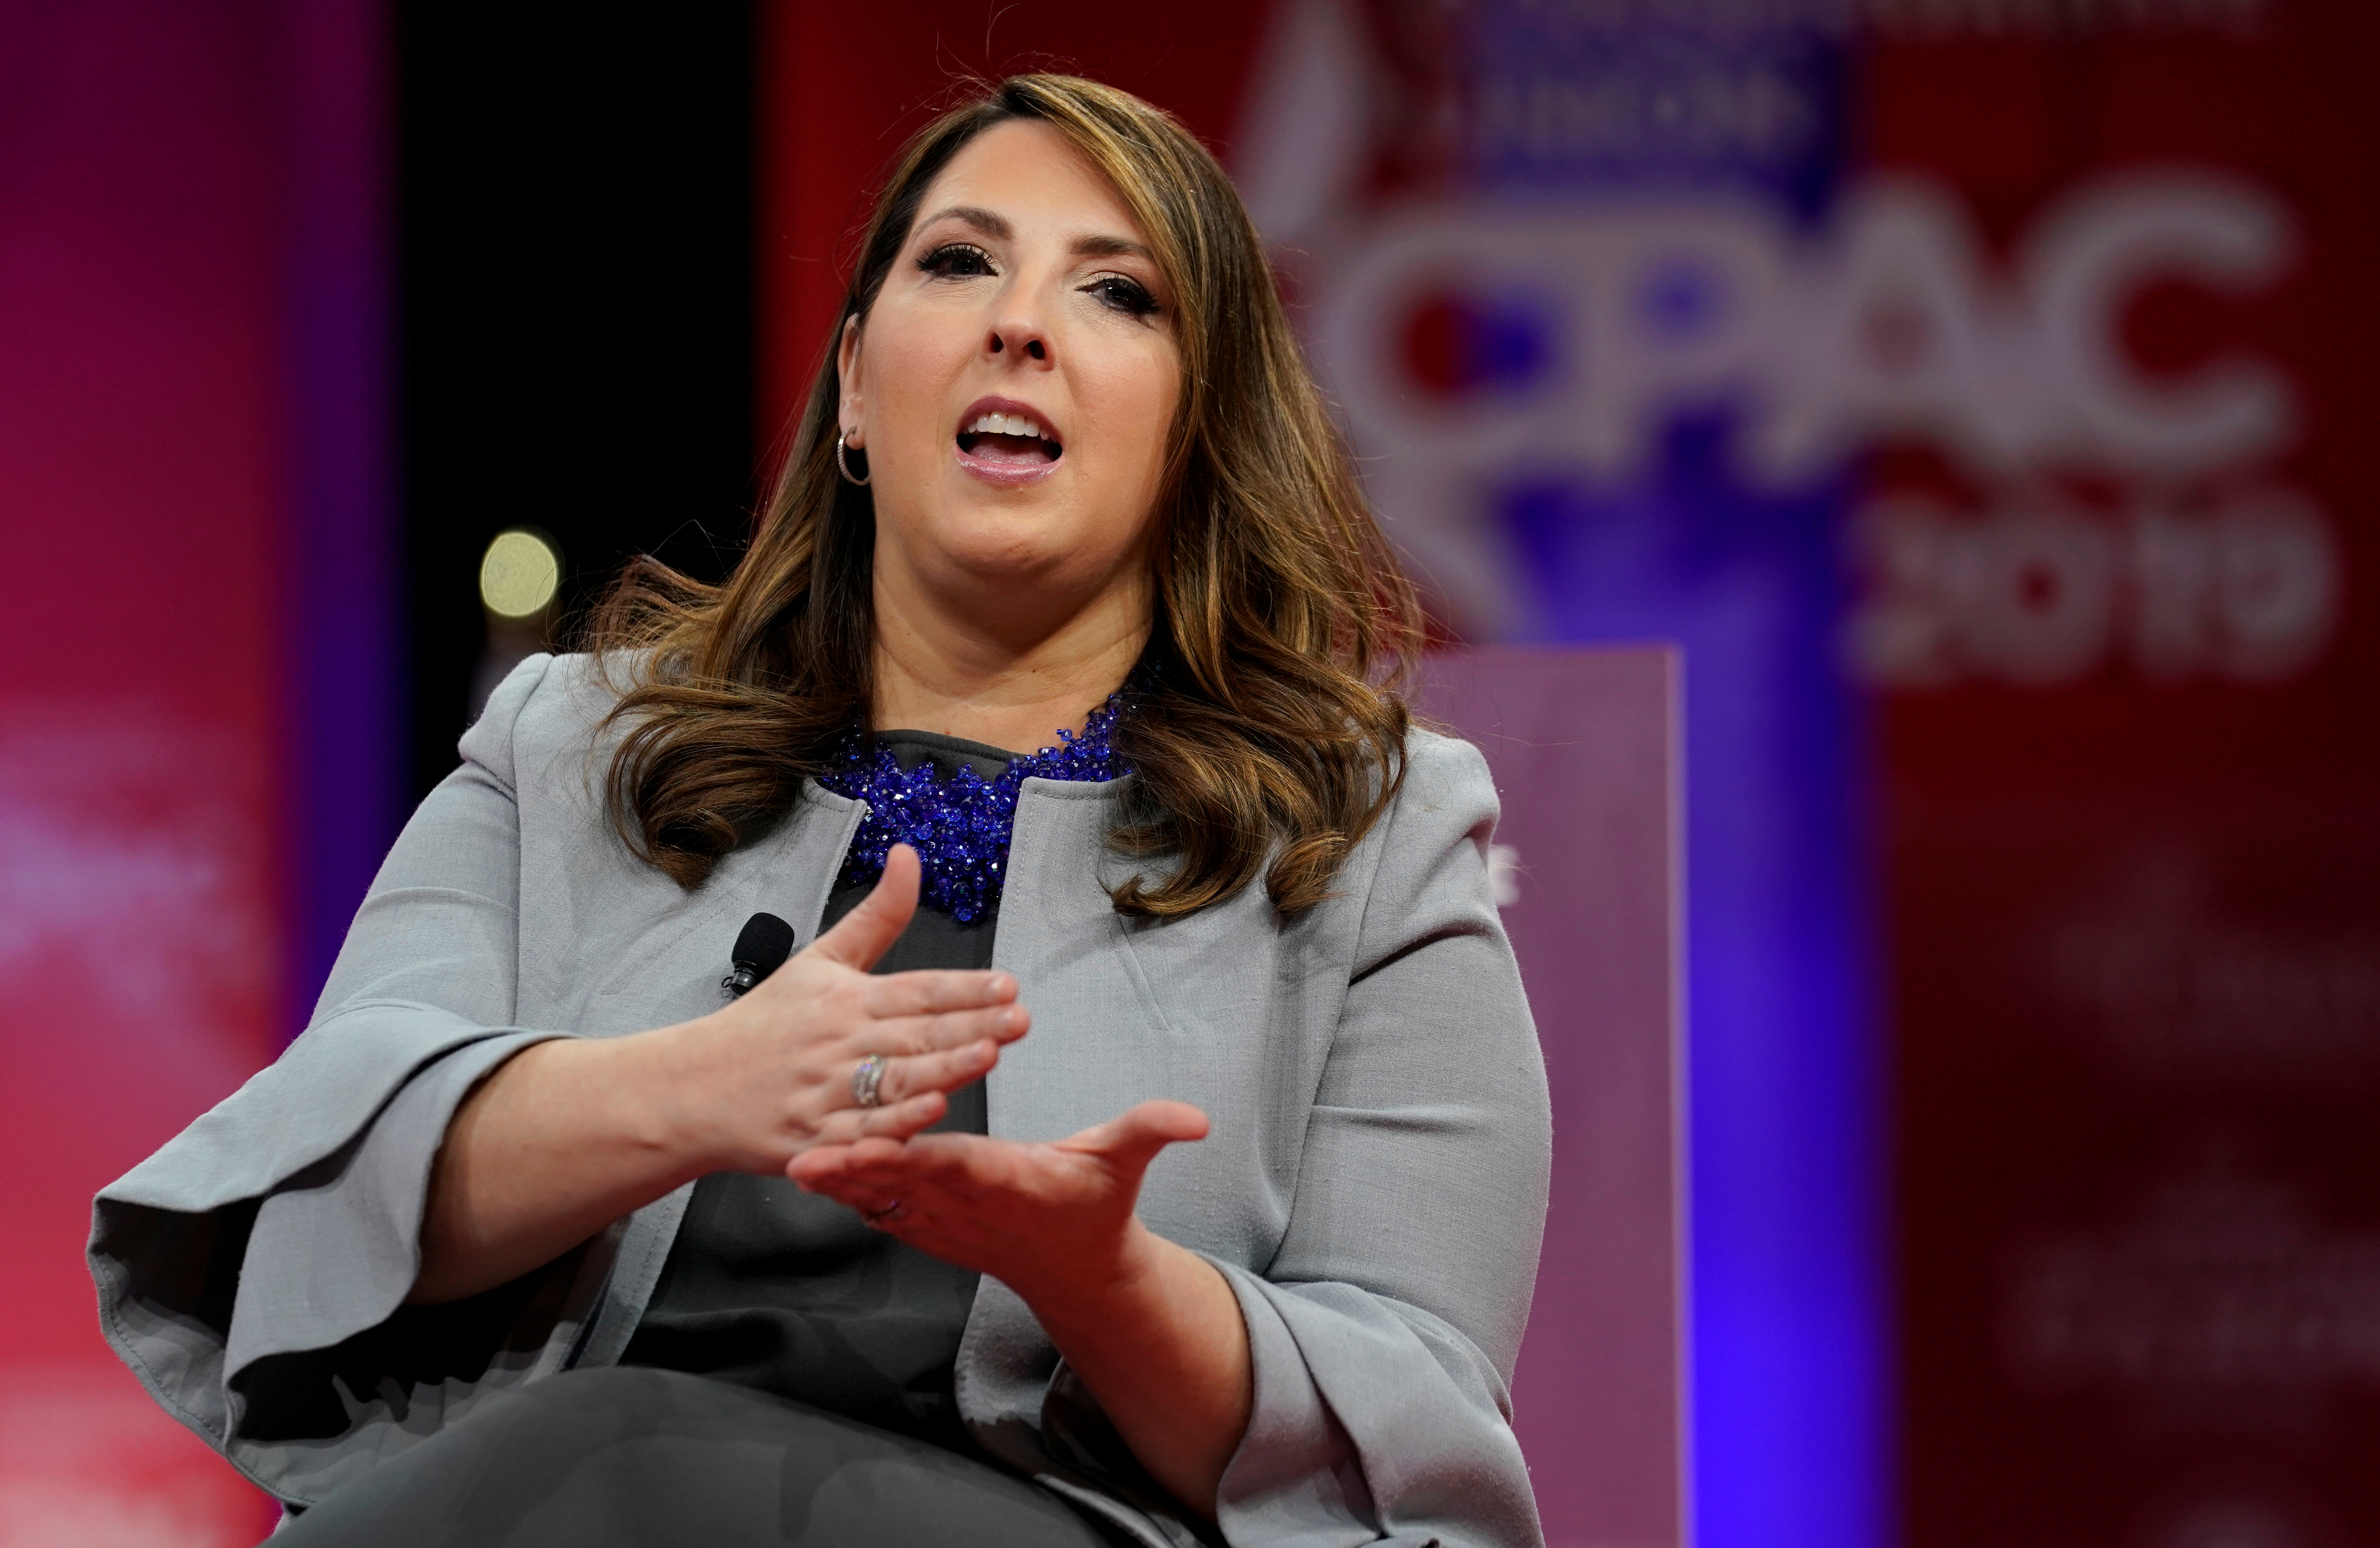 epublican National Committee chairwoman Ronna McDaniel speaks at the Conservative Political Action Conference (CPAC) at National Harbor in Oxon Hill, Maryland, U.S., February 28, 2019. REUTERS/Kevin Lamarque - RC19FD634A50